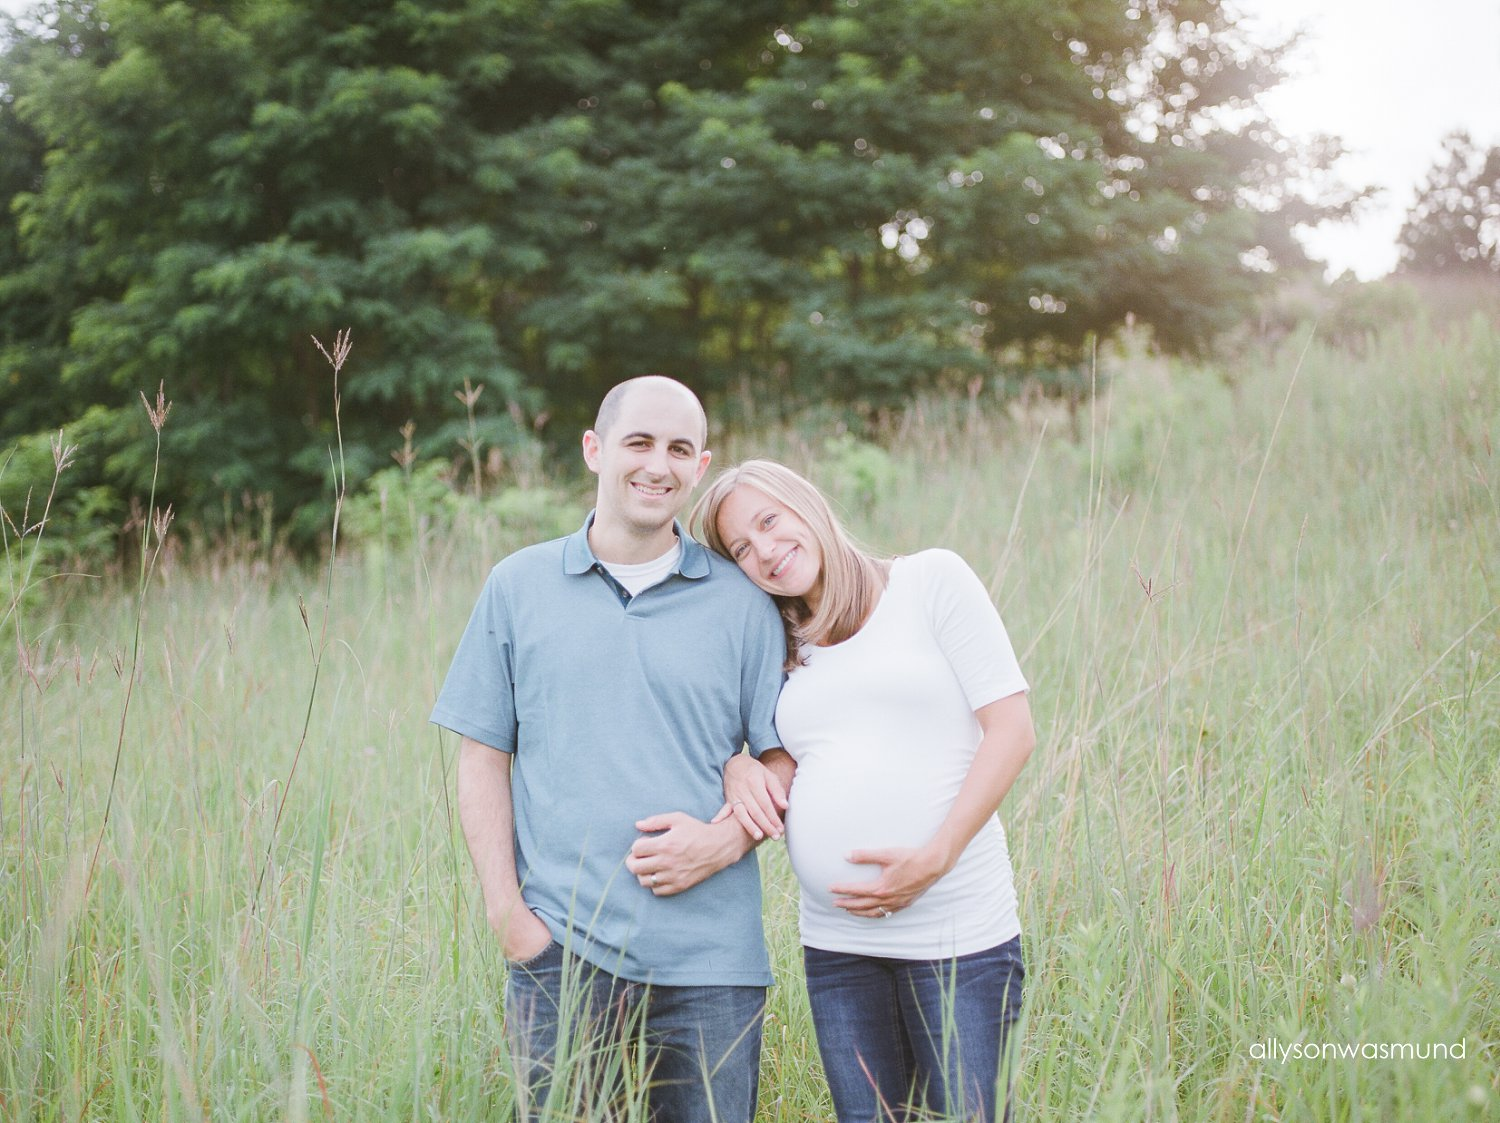 st-paul-mn-outdoor-film-maternity-photographer_0119.jpg